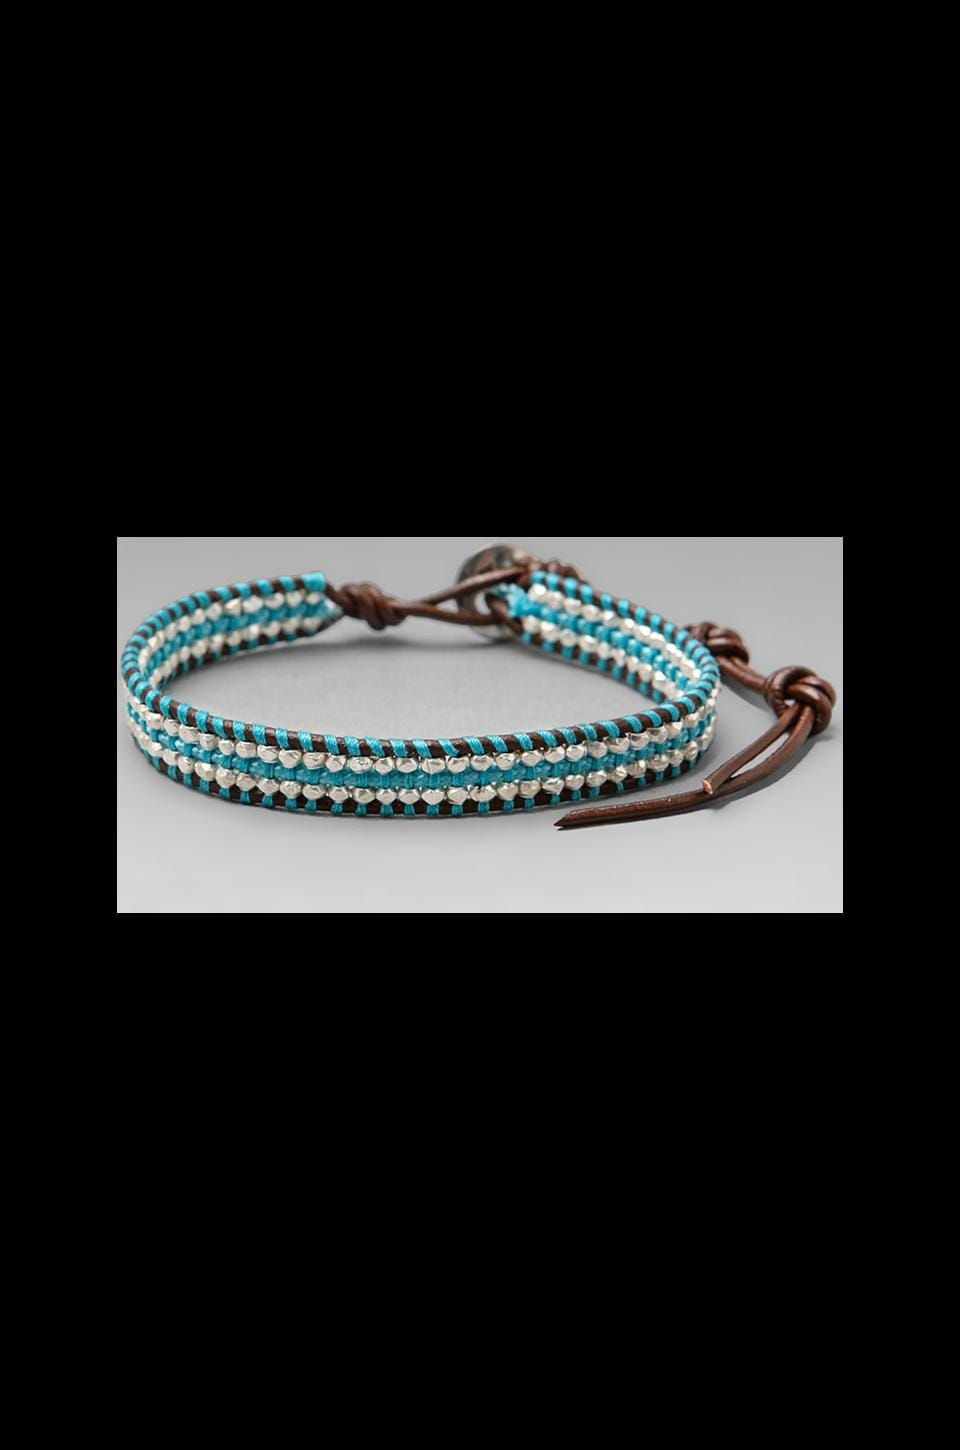 CHAN LUU Bracelet in Light Blue/Brown